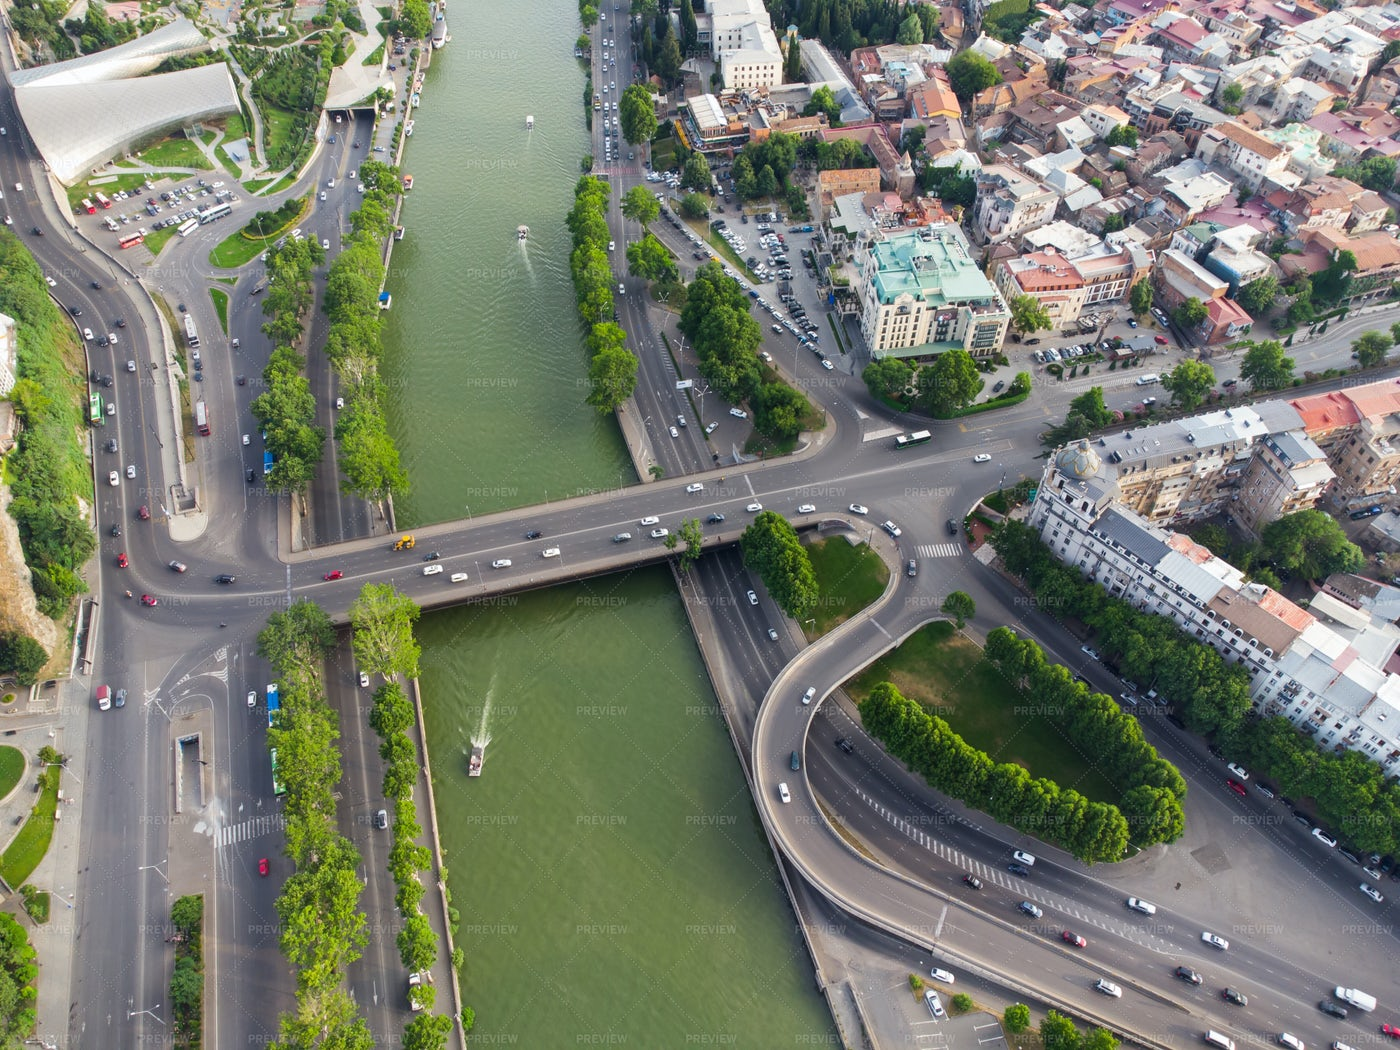 Traffic And Boars In The River: Stock Photos